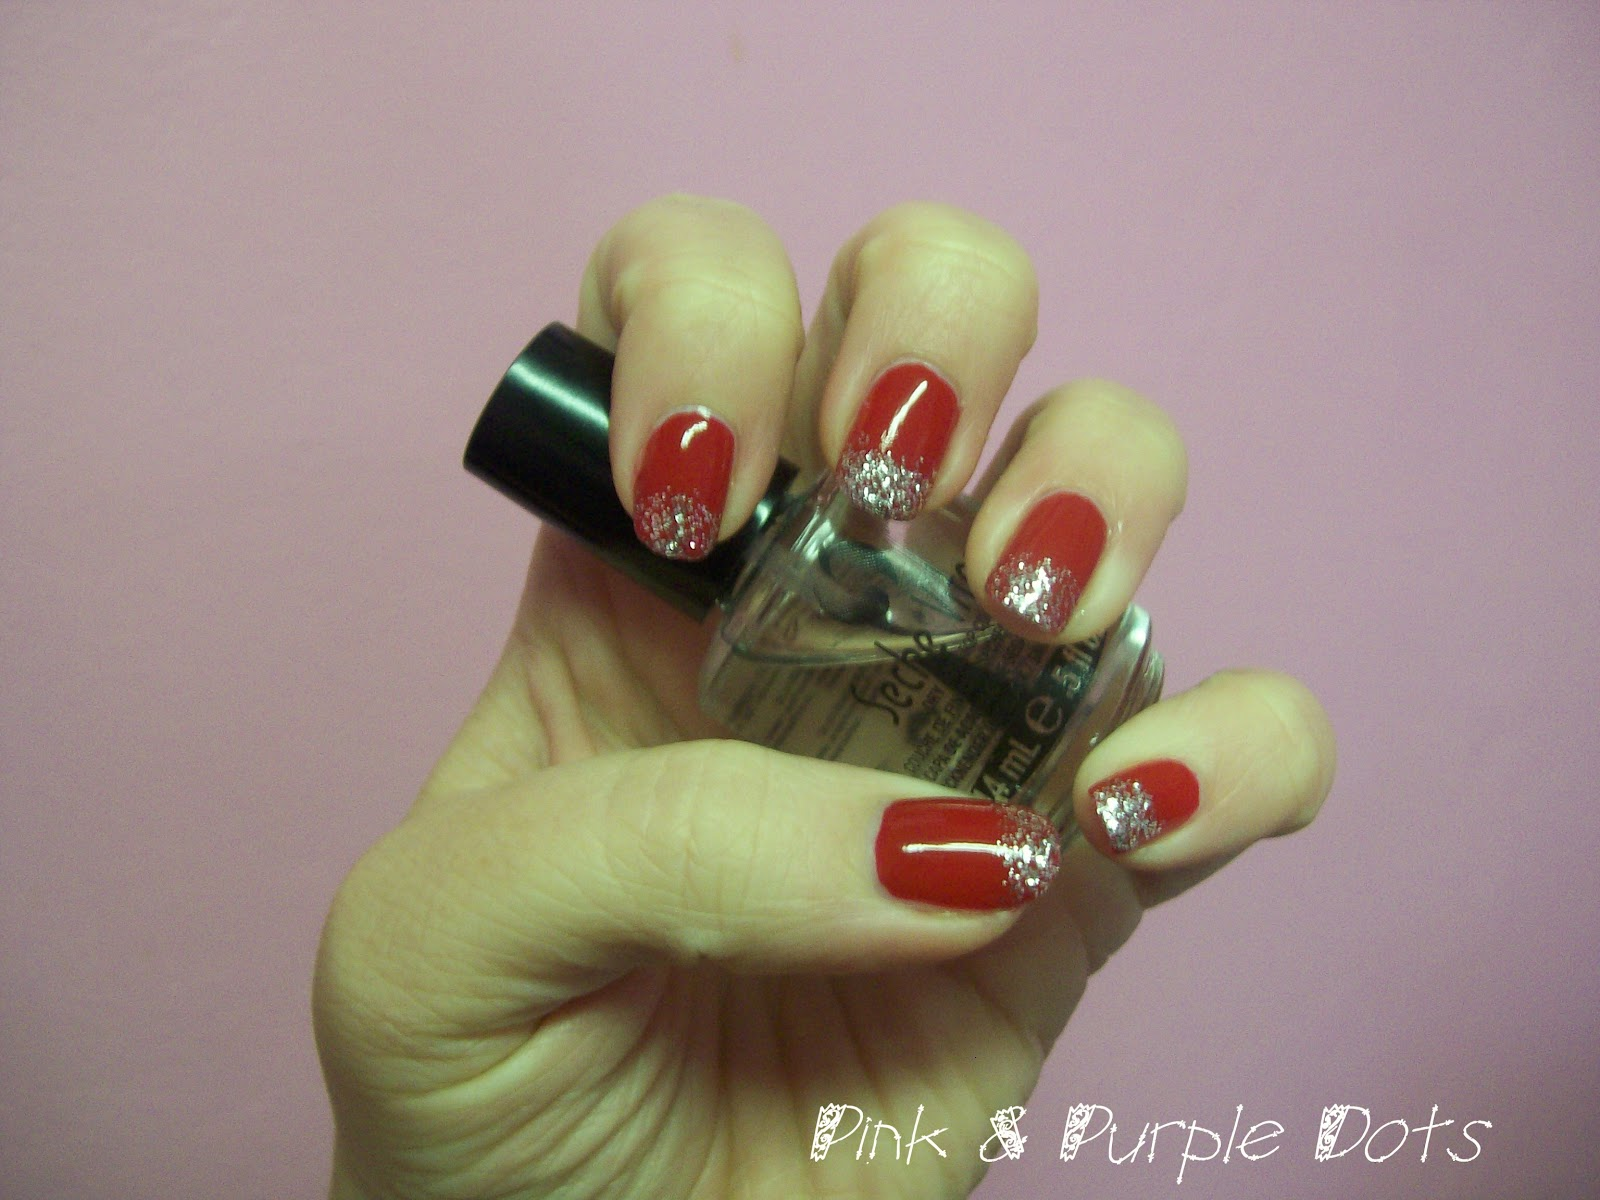 Pink & Purple Dots: Red and Silver Glitter Tips ♥